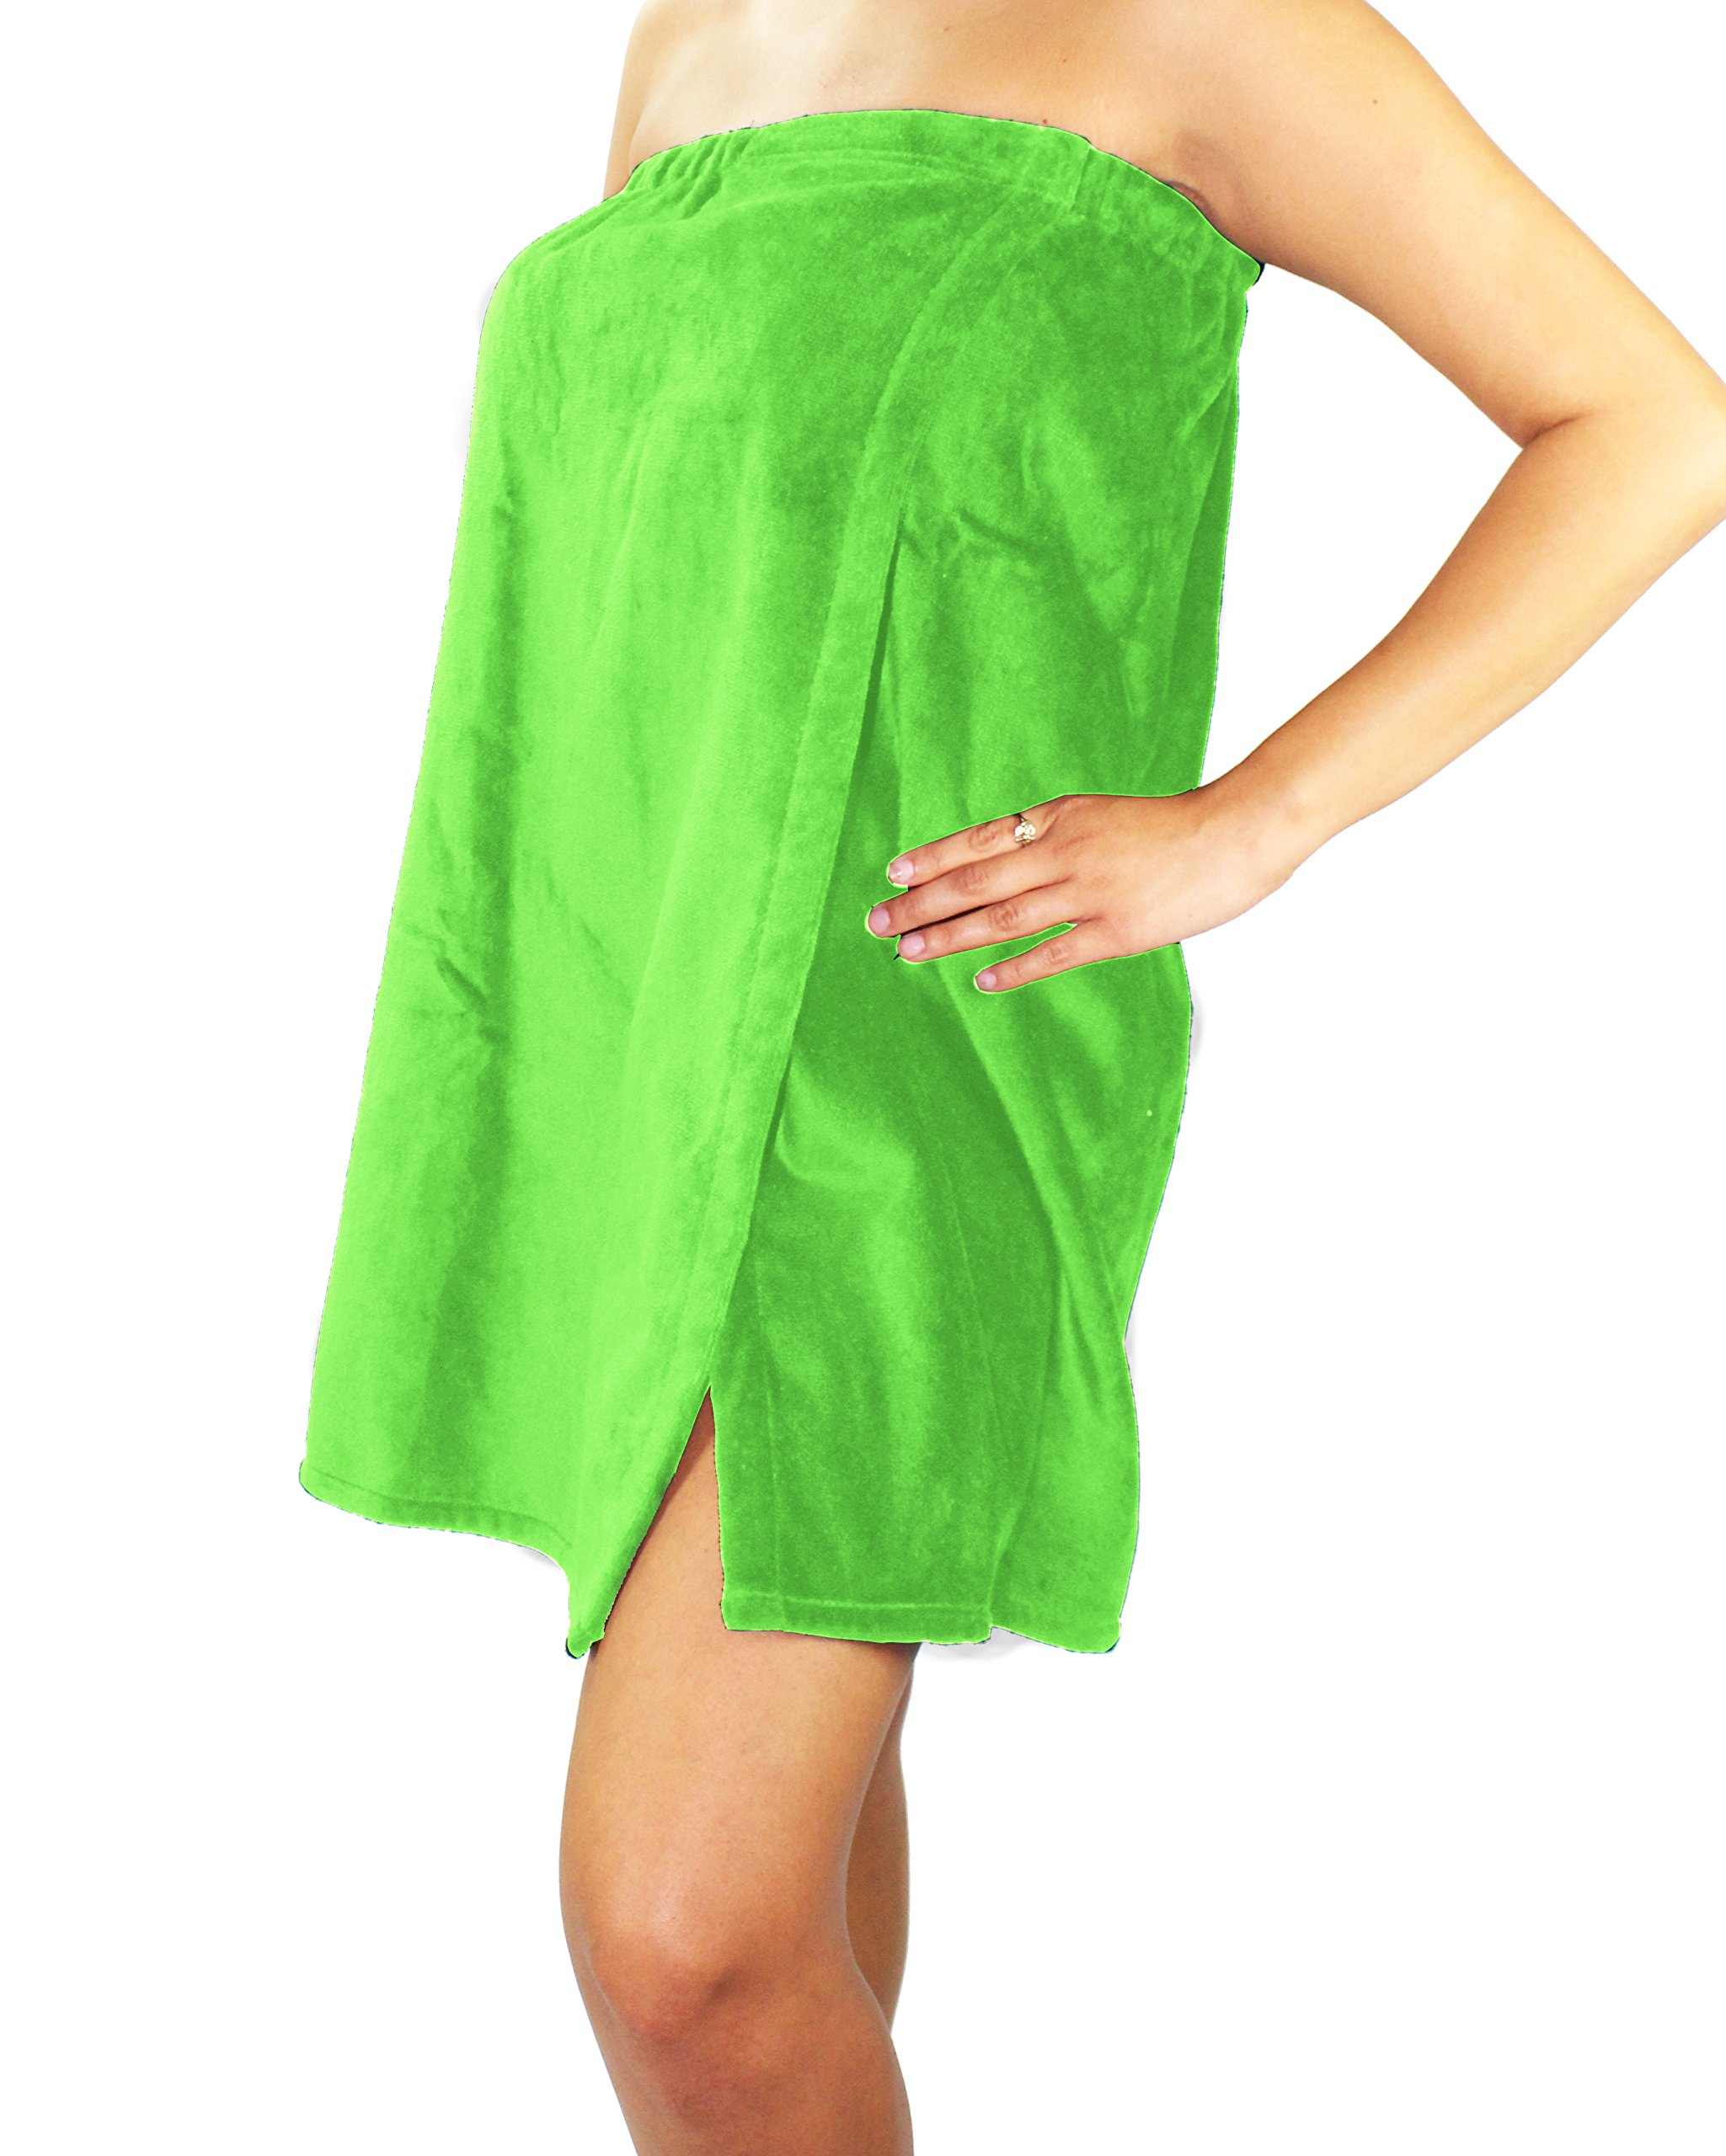 Sanders Classics 25'' Terry Towel Wrap - Lime Green